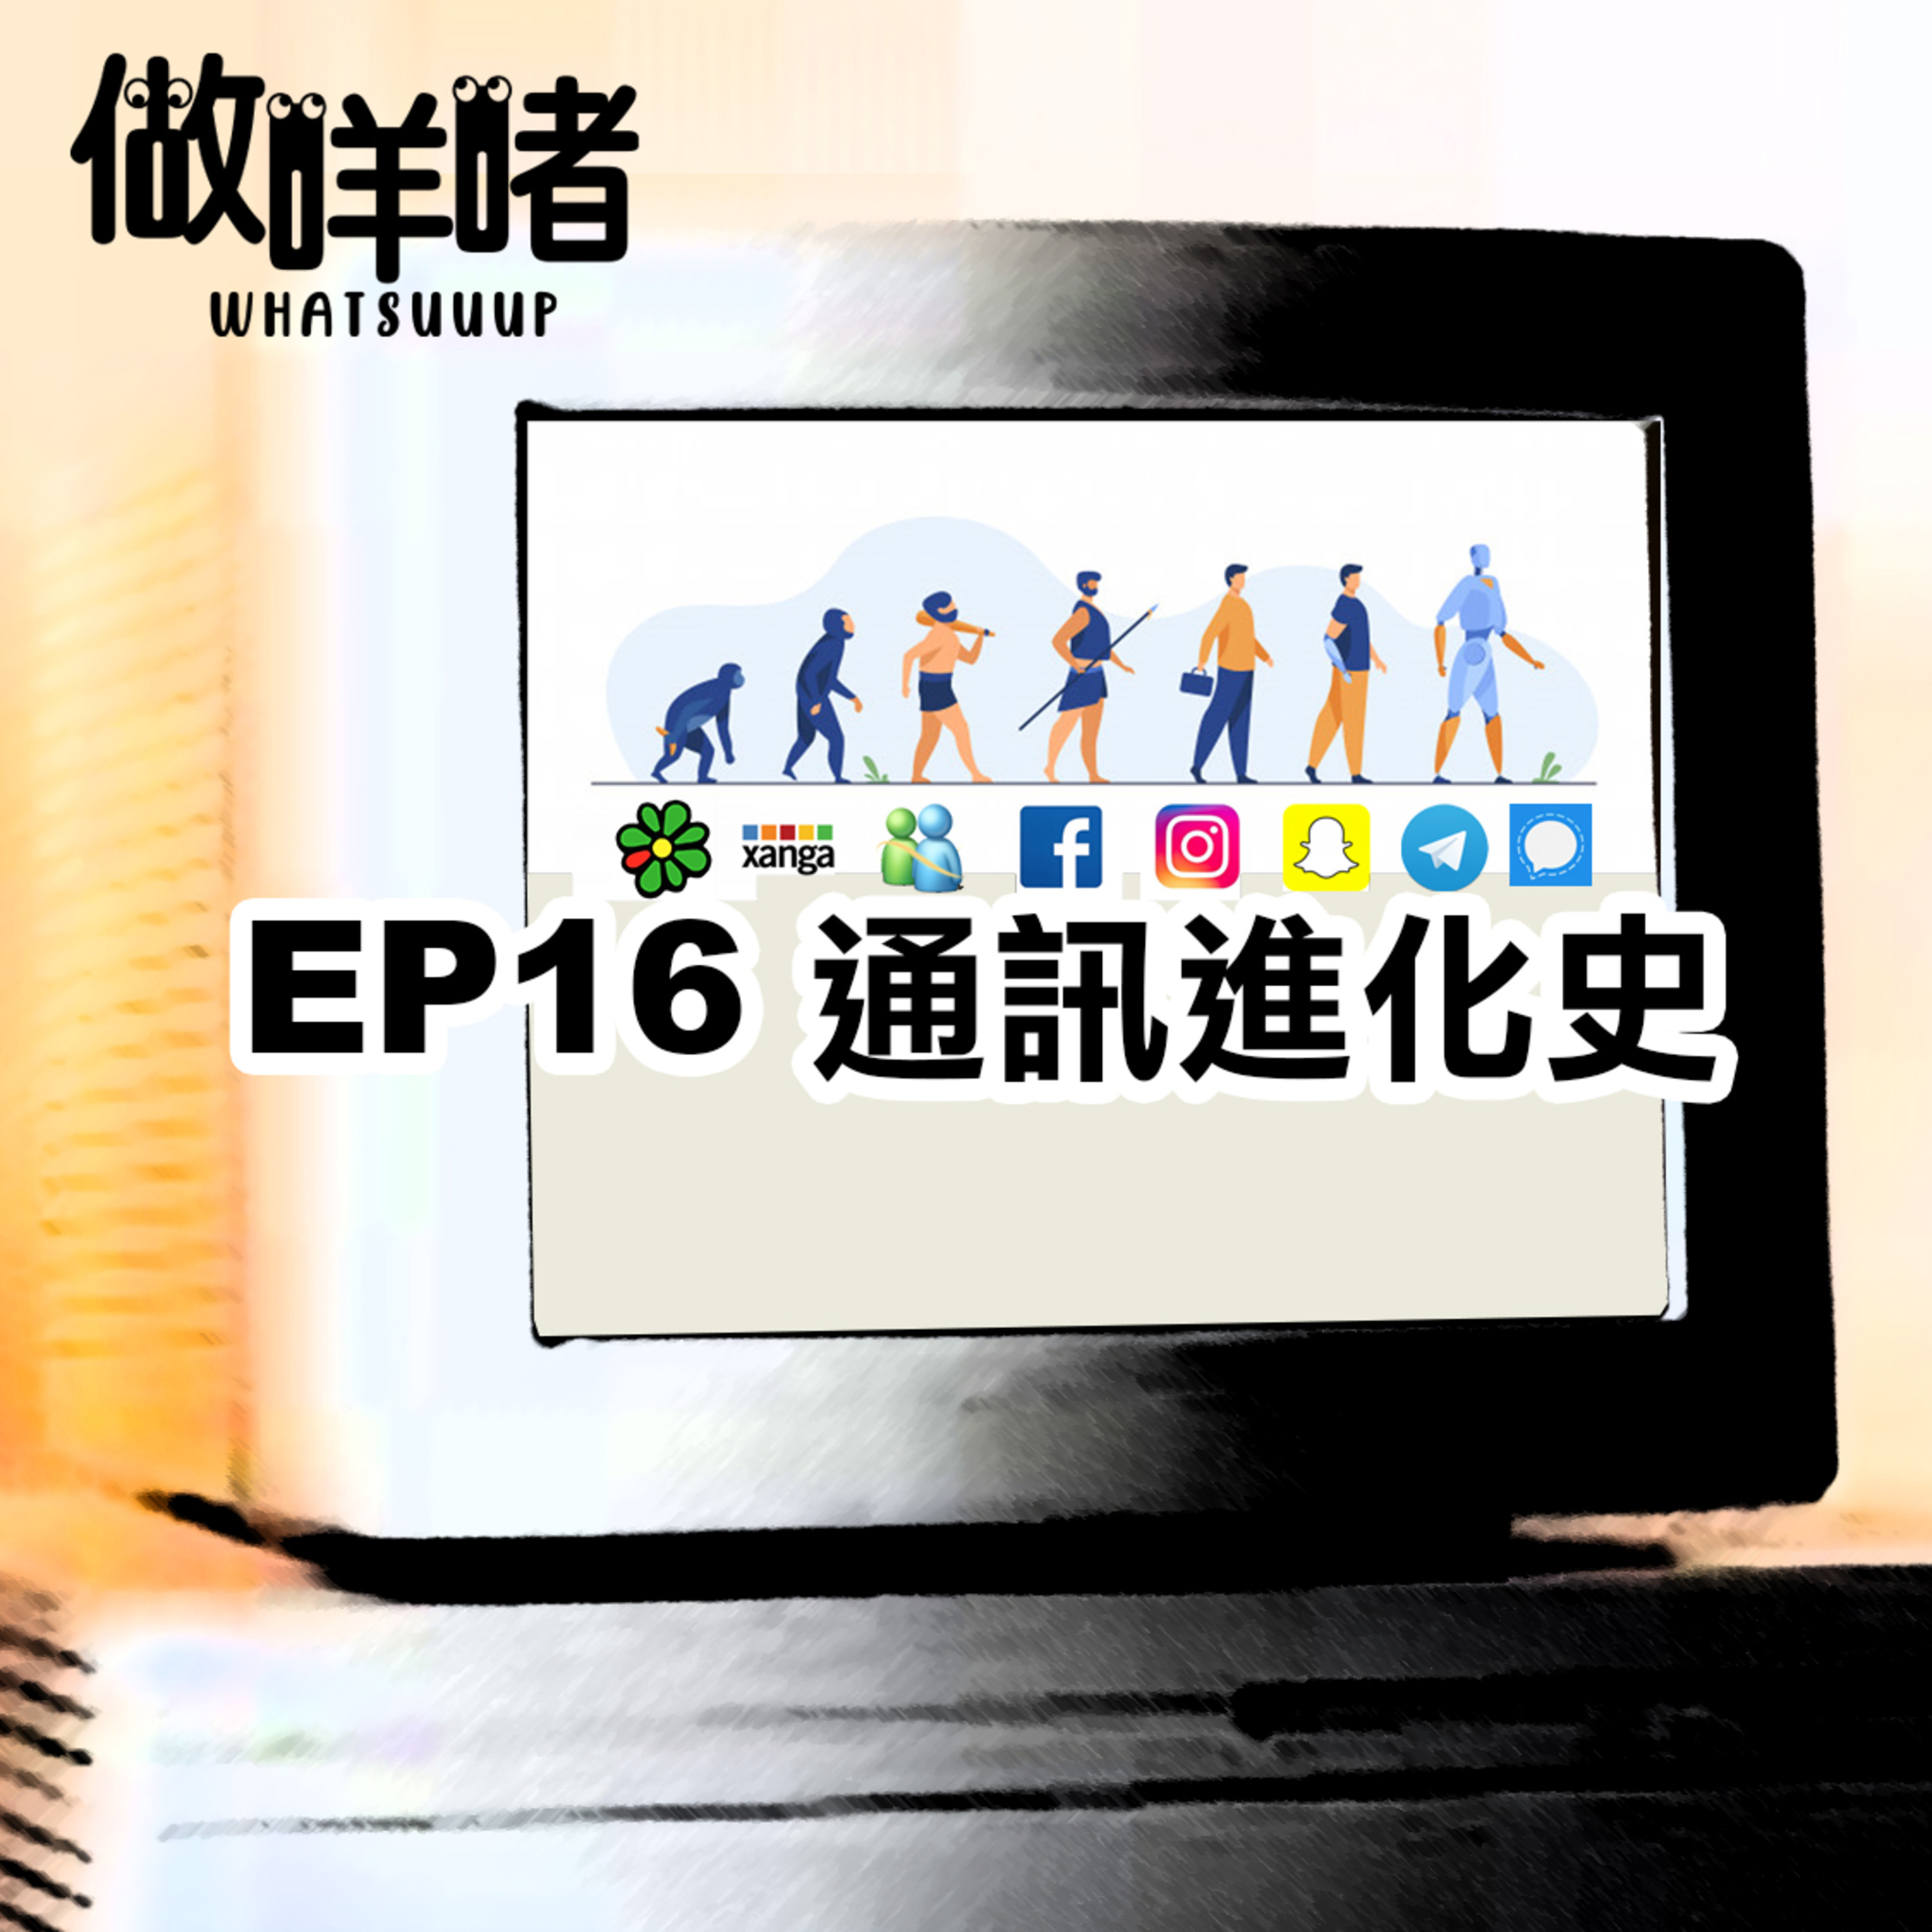 EP16《做咩啫》通訊進化史 The History of Communication Software | 廣東話 Podcast